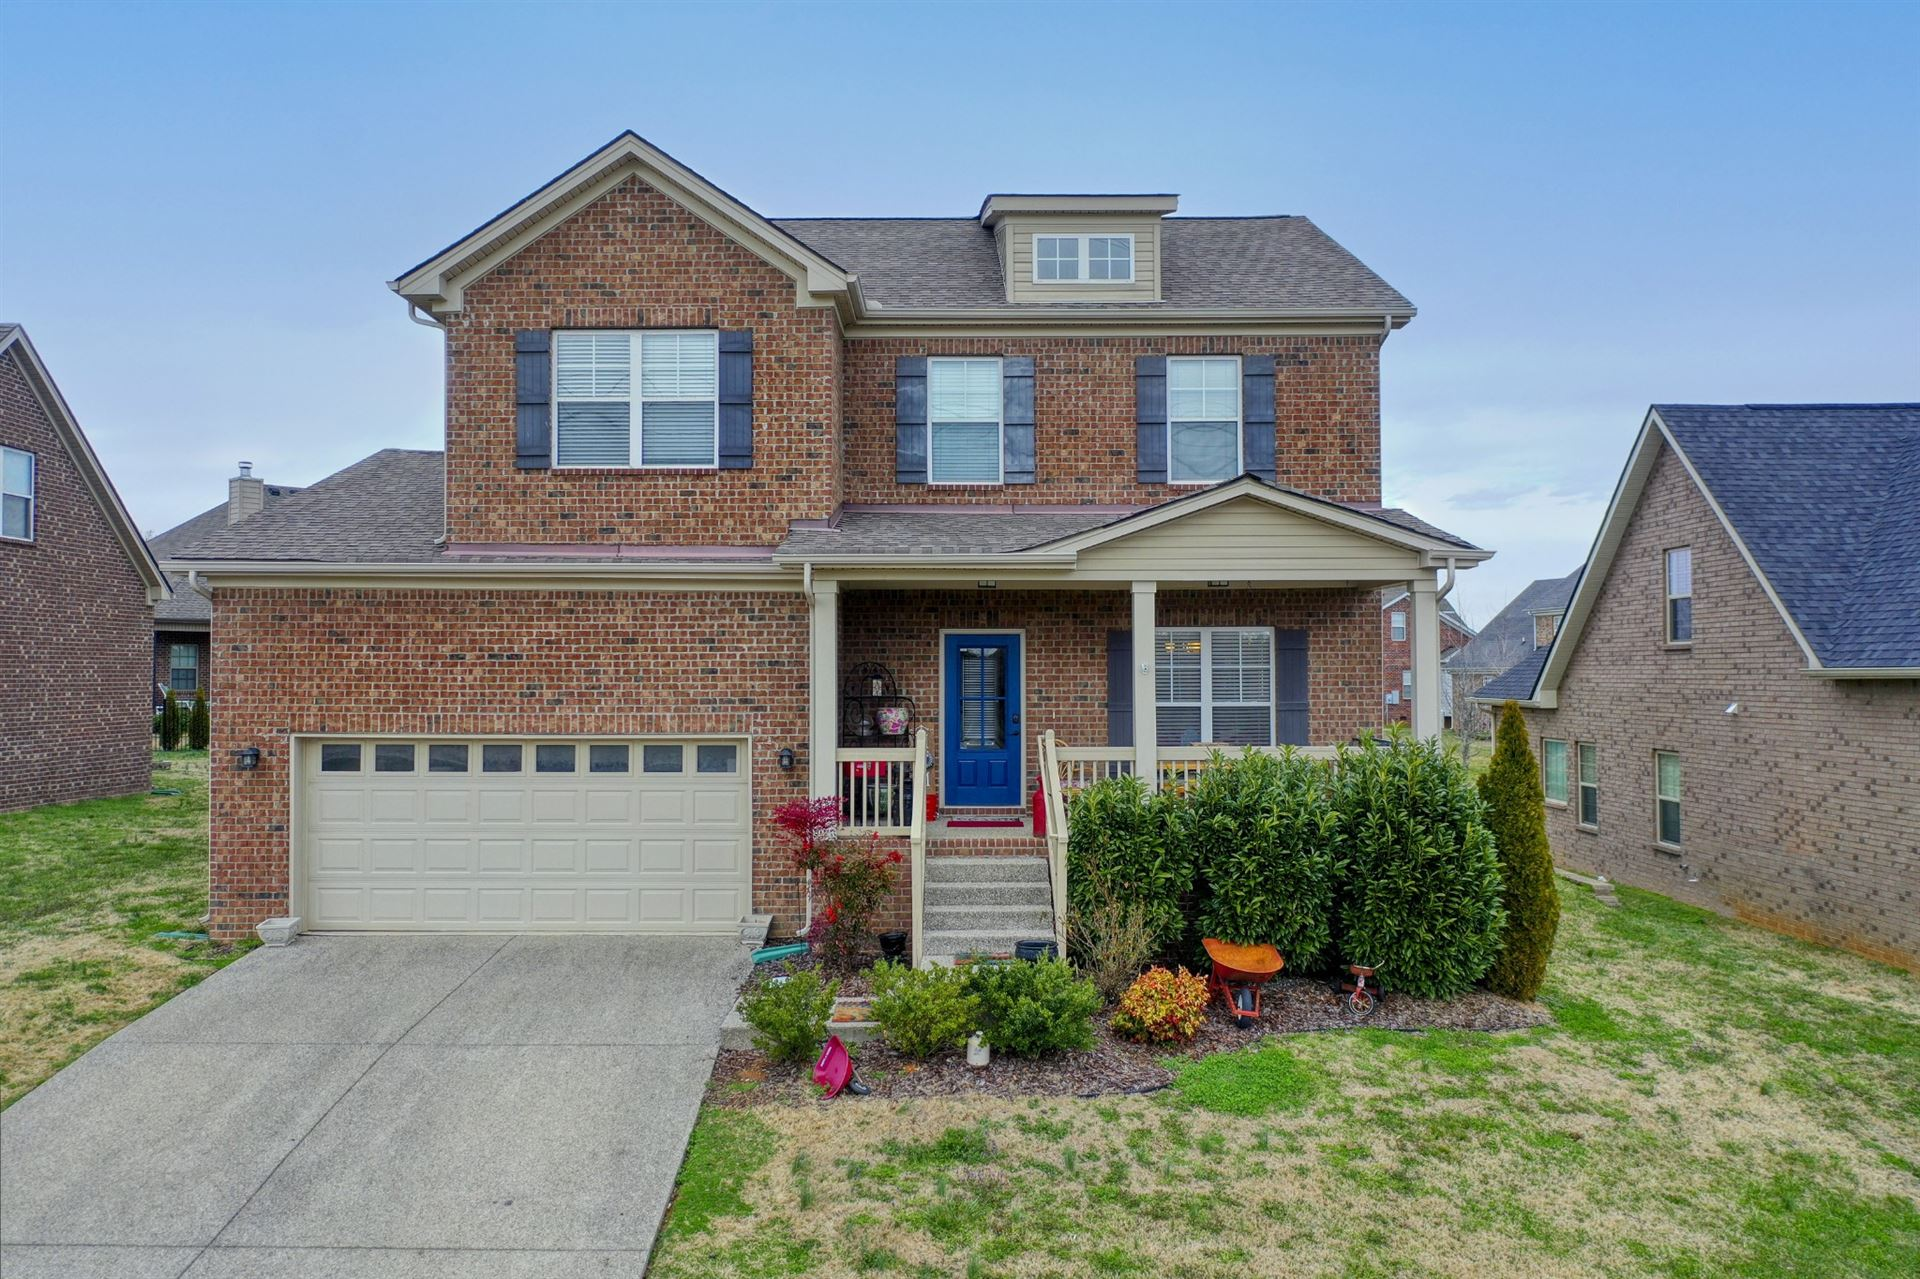 3032 Honeysuckle Dr, Spring Hill, TN 37174 - MLS#: 2232628